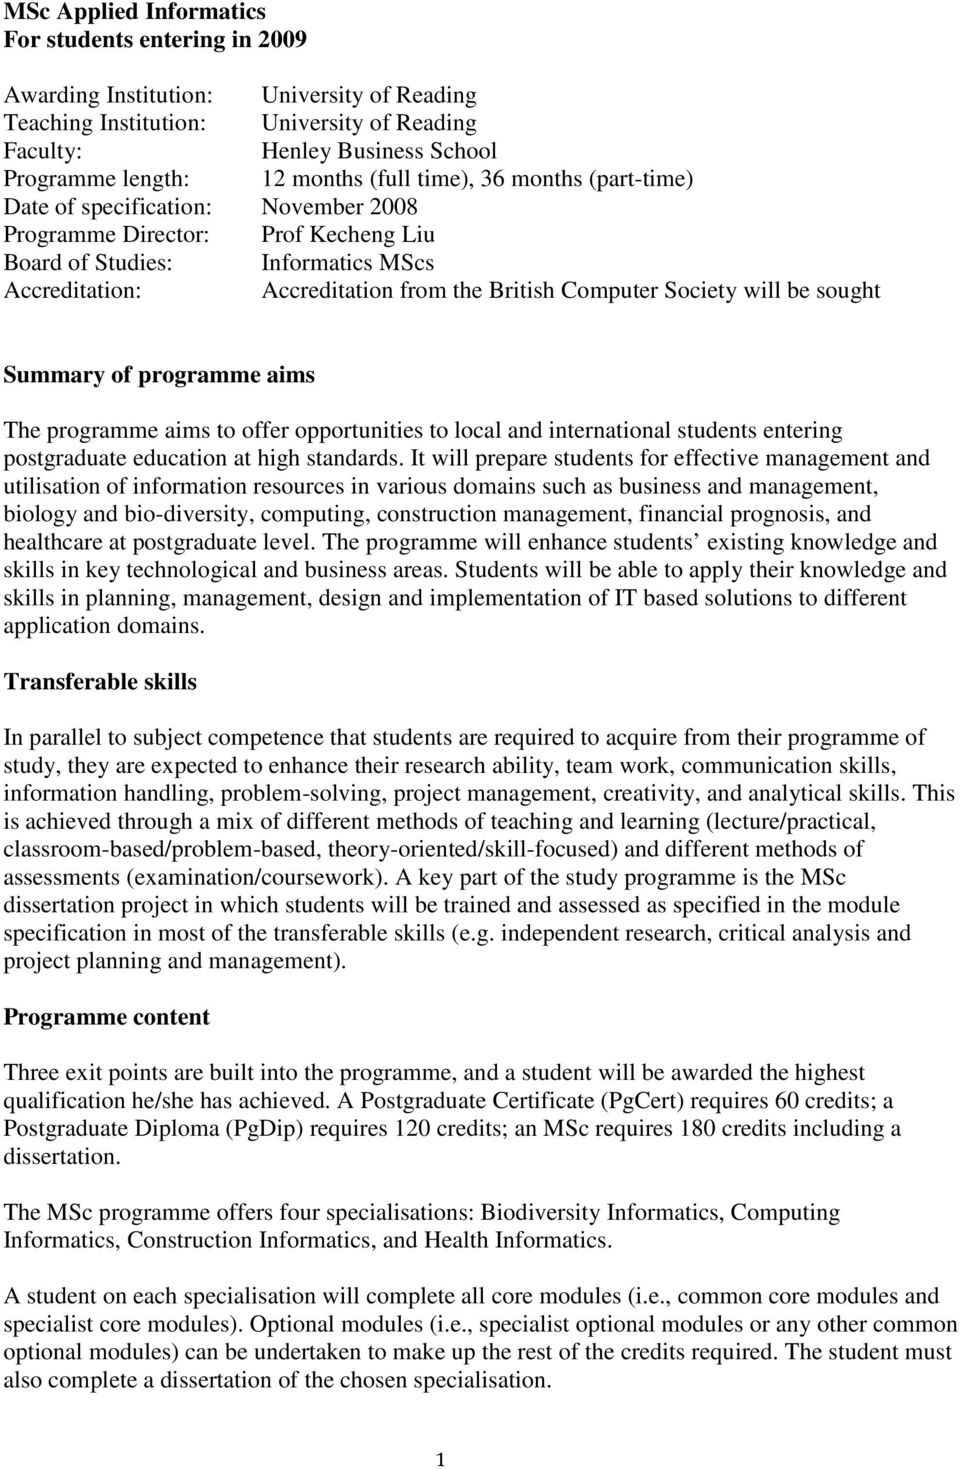 Computer Society will be sought Summary of programme aims The programme aims to offer opportunities to local and international students entering postgraduate education at high standards.